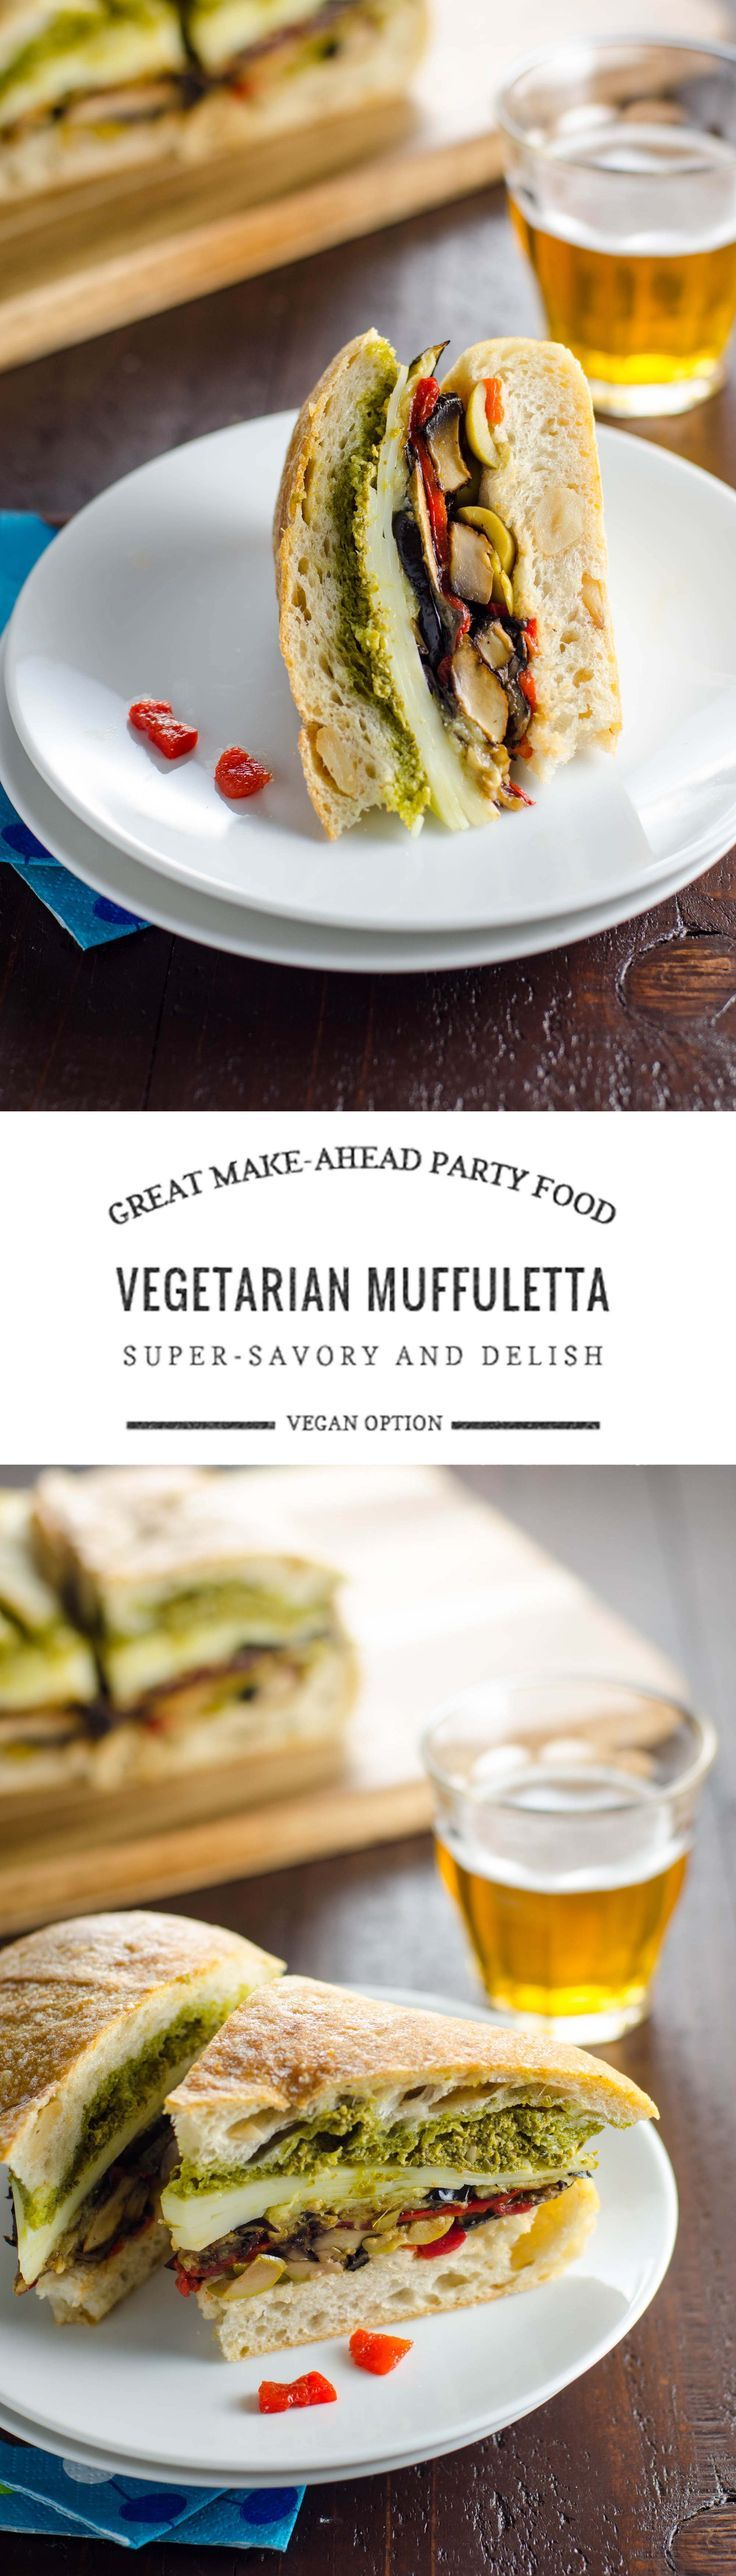 Easy, no-cook recipe for a wonderfully savory vegetarian muffuletta sandwich. Celebrate Mardi Gras (or Mardi Gratzer, if you wish) in style. :)